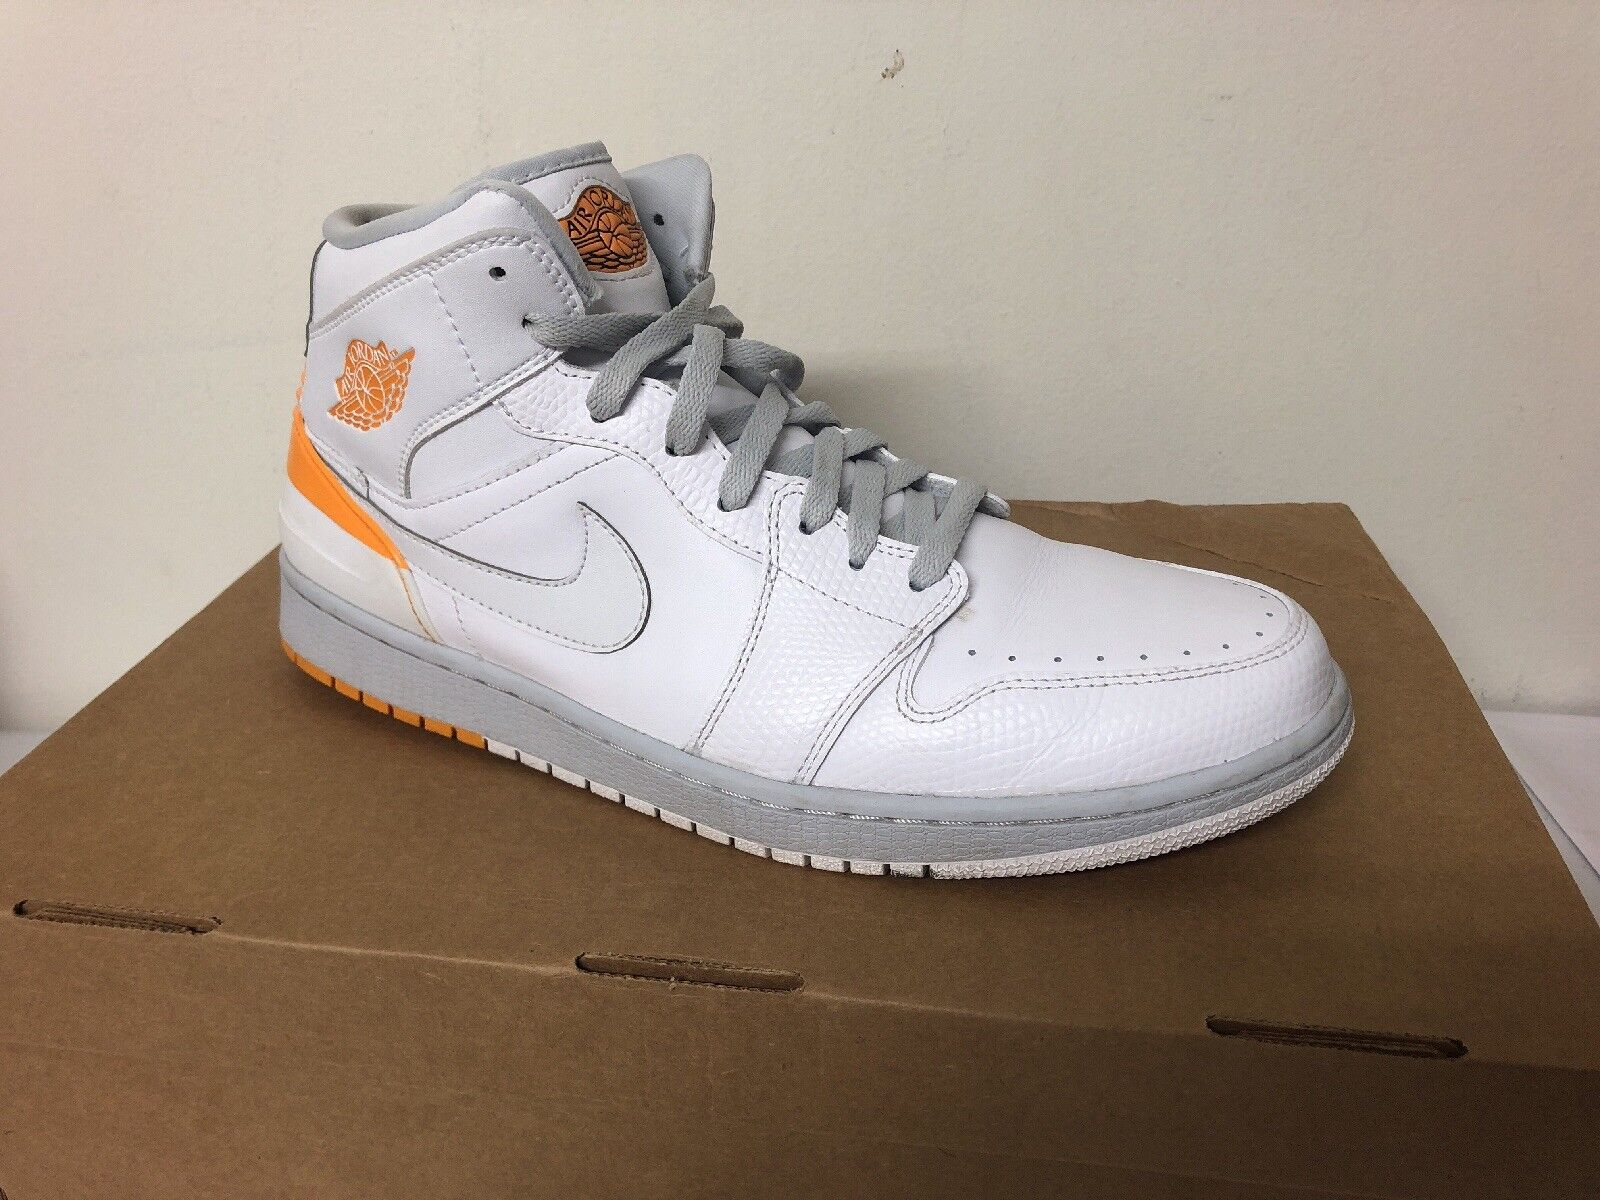 Nike Air Jordan 1 Retro '86, White Mens Size 11.5